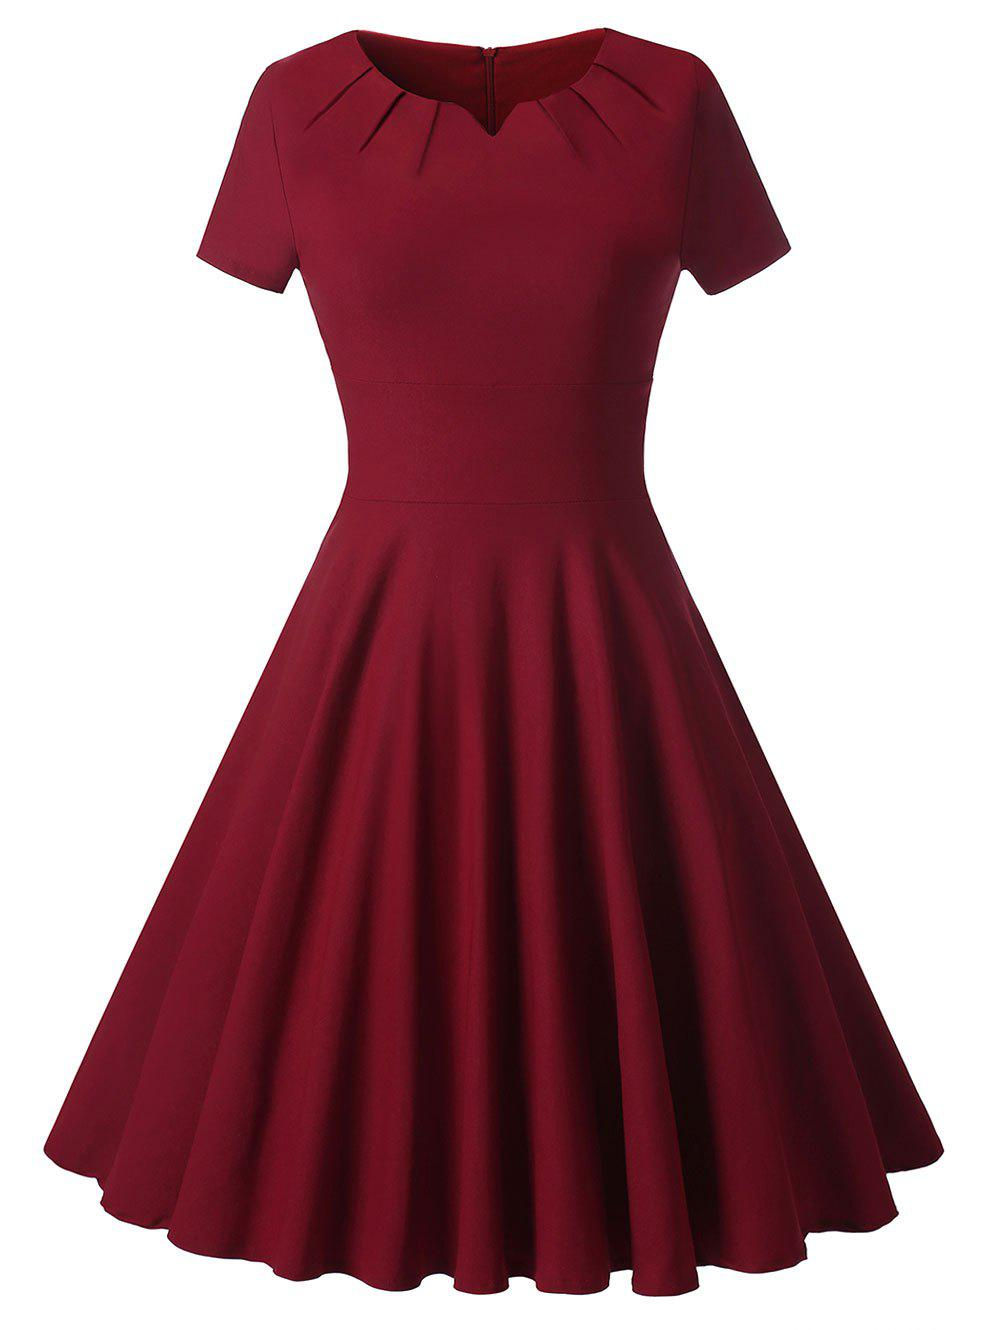 Fashion Knee Length Vintage Cocktail Dress